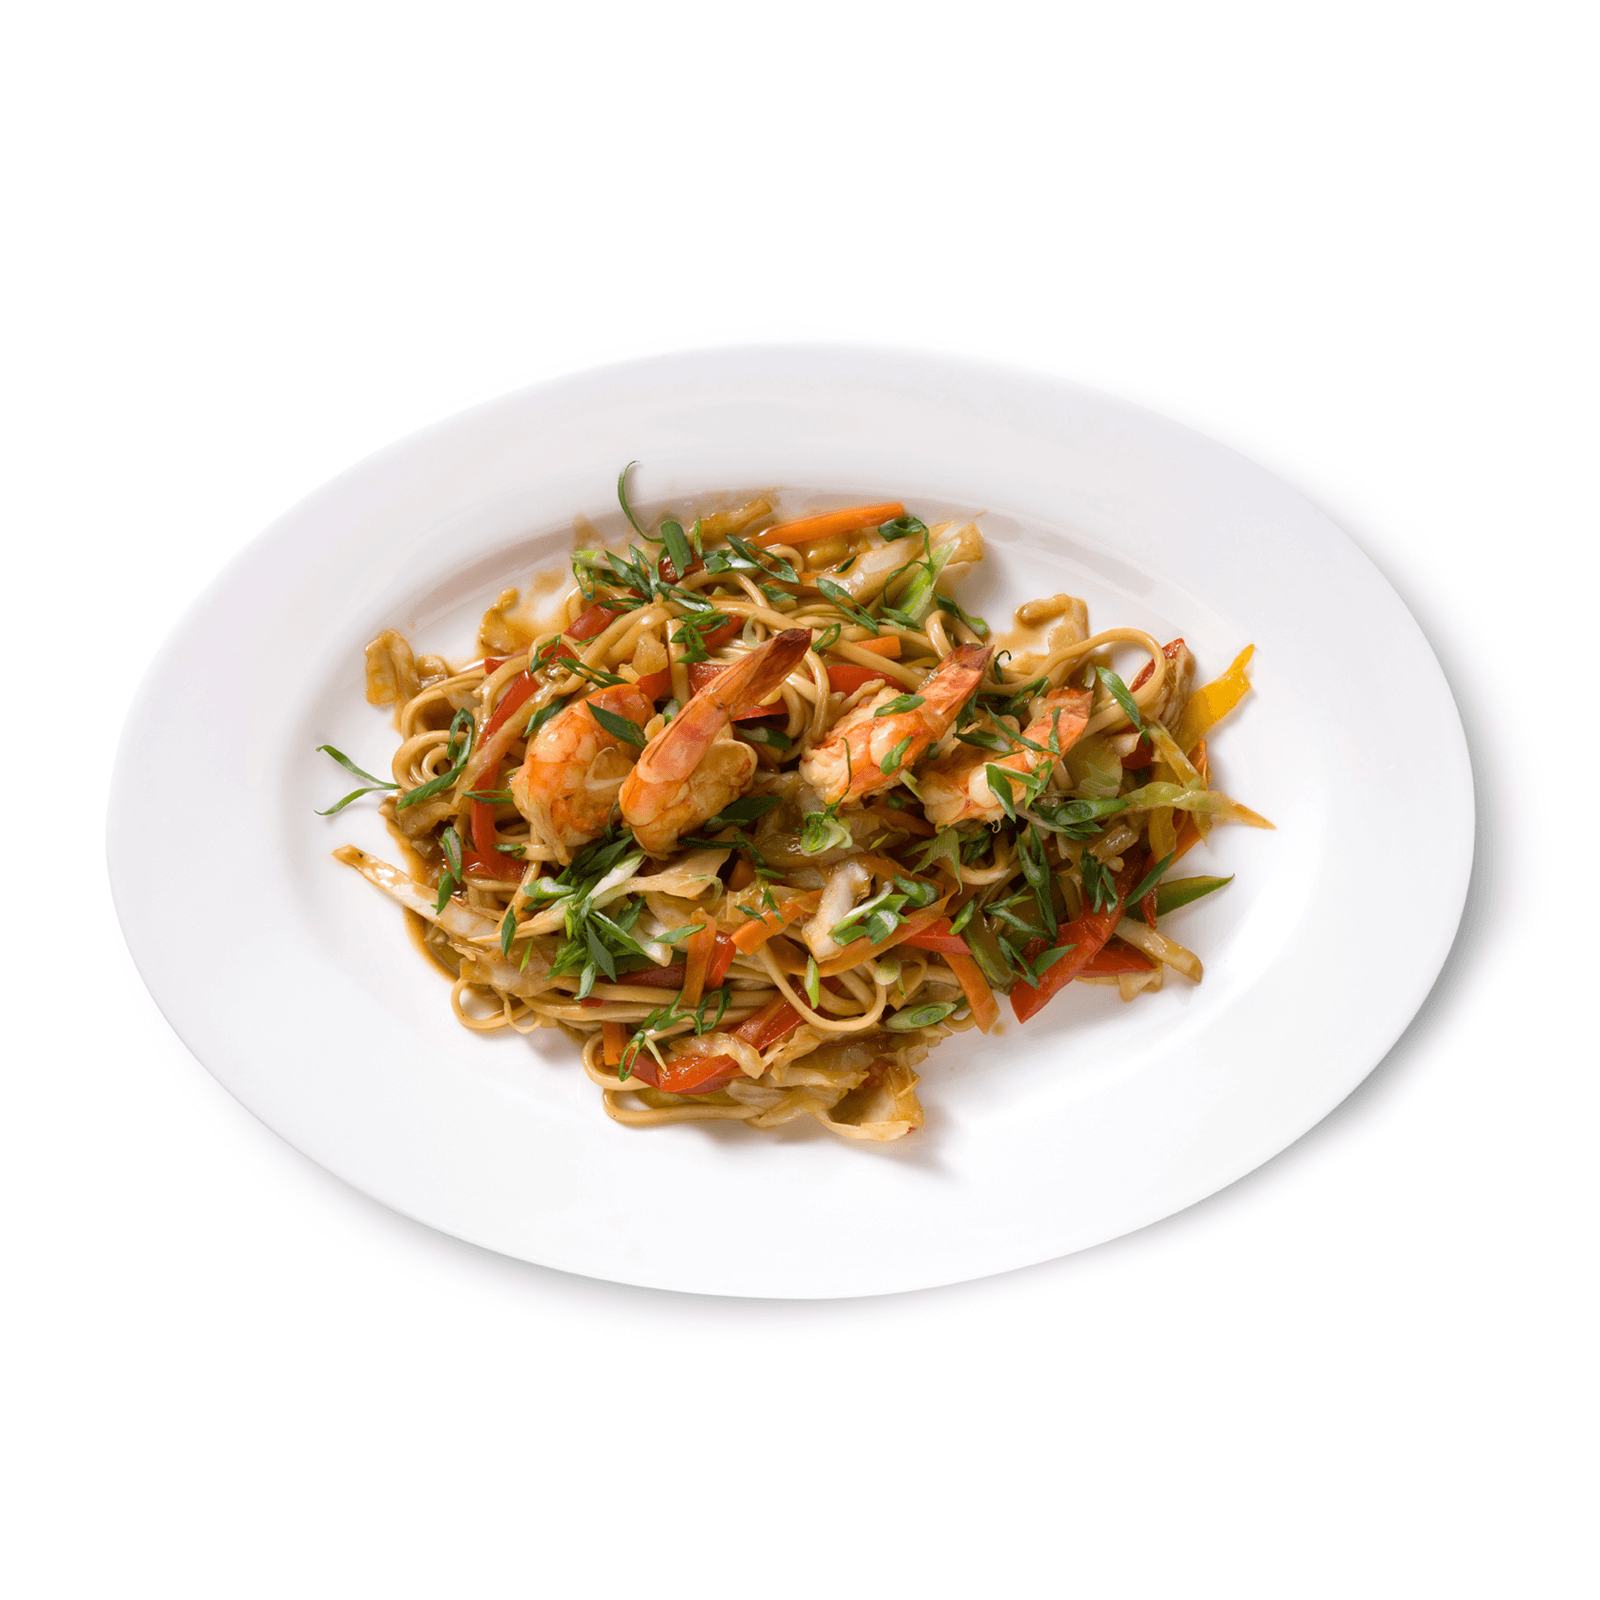 SHRIMP NOODLES